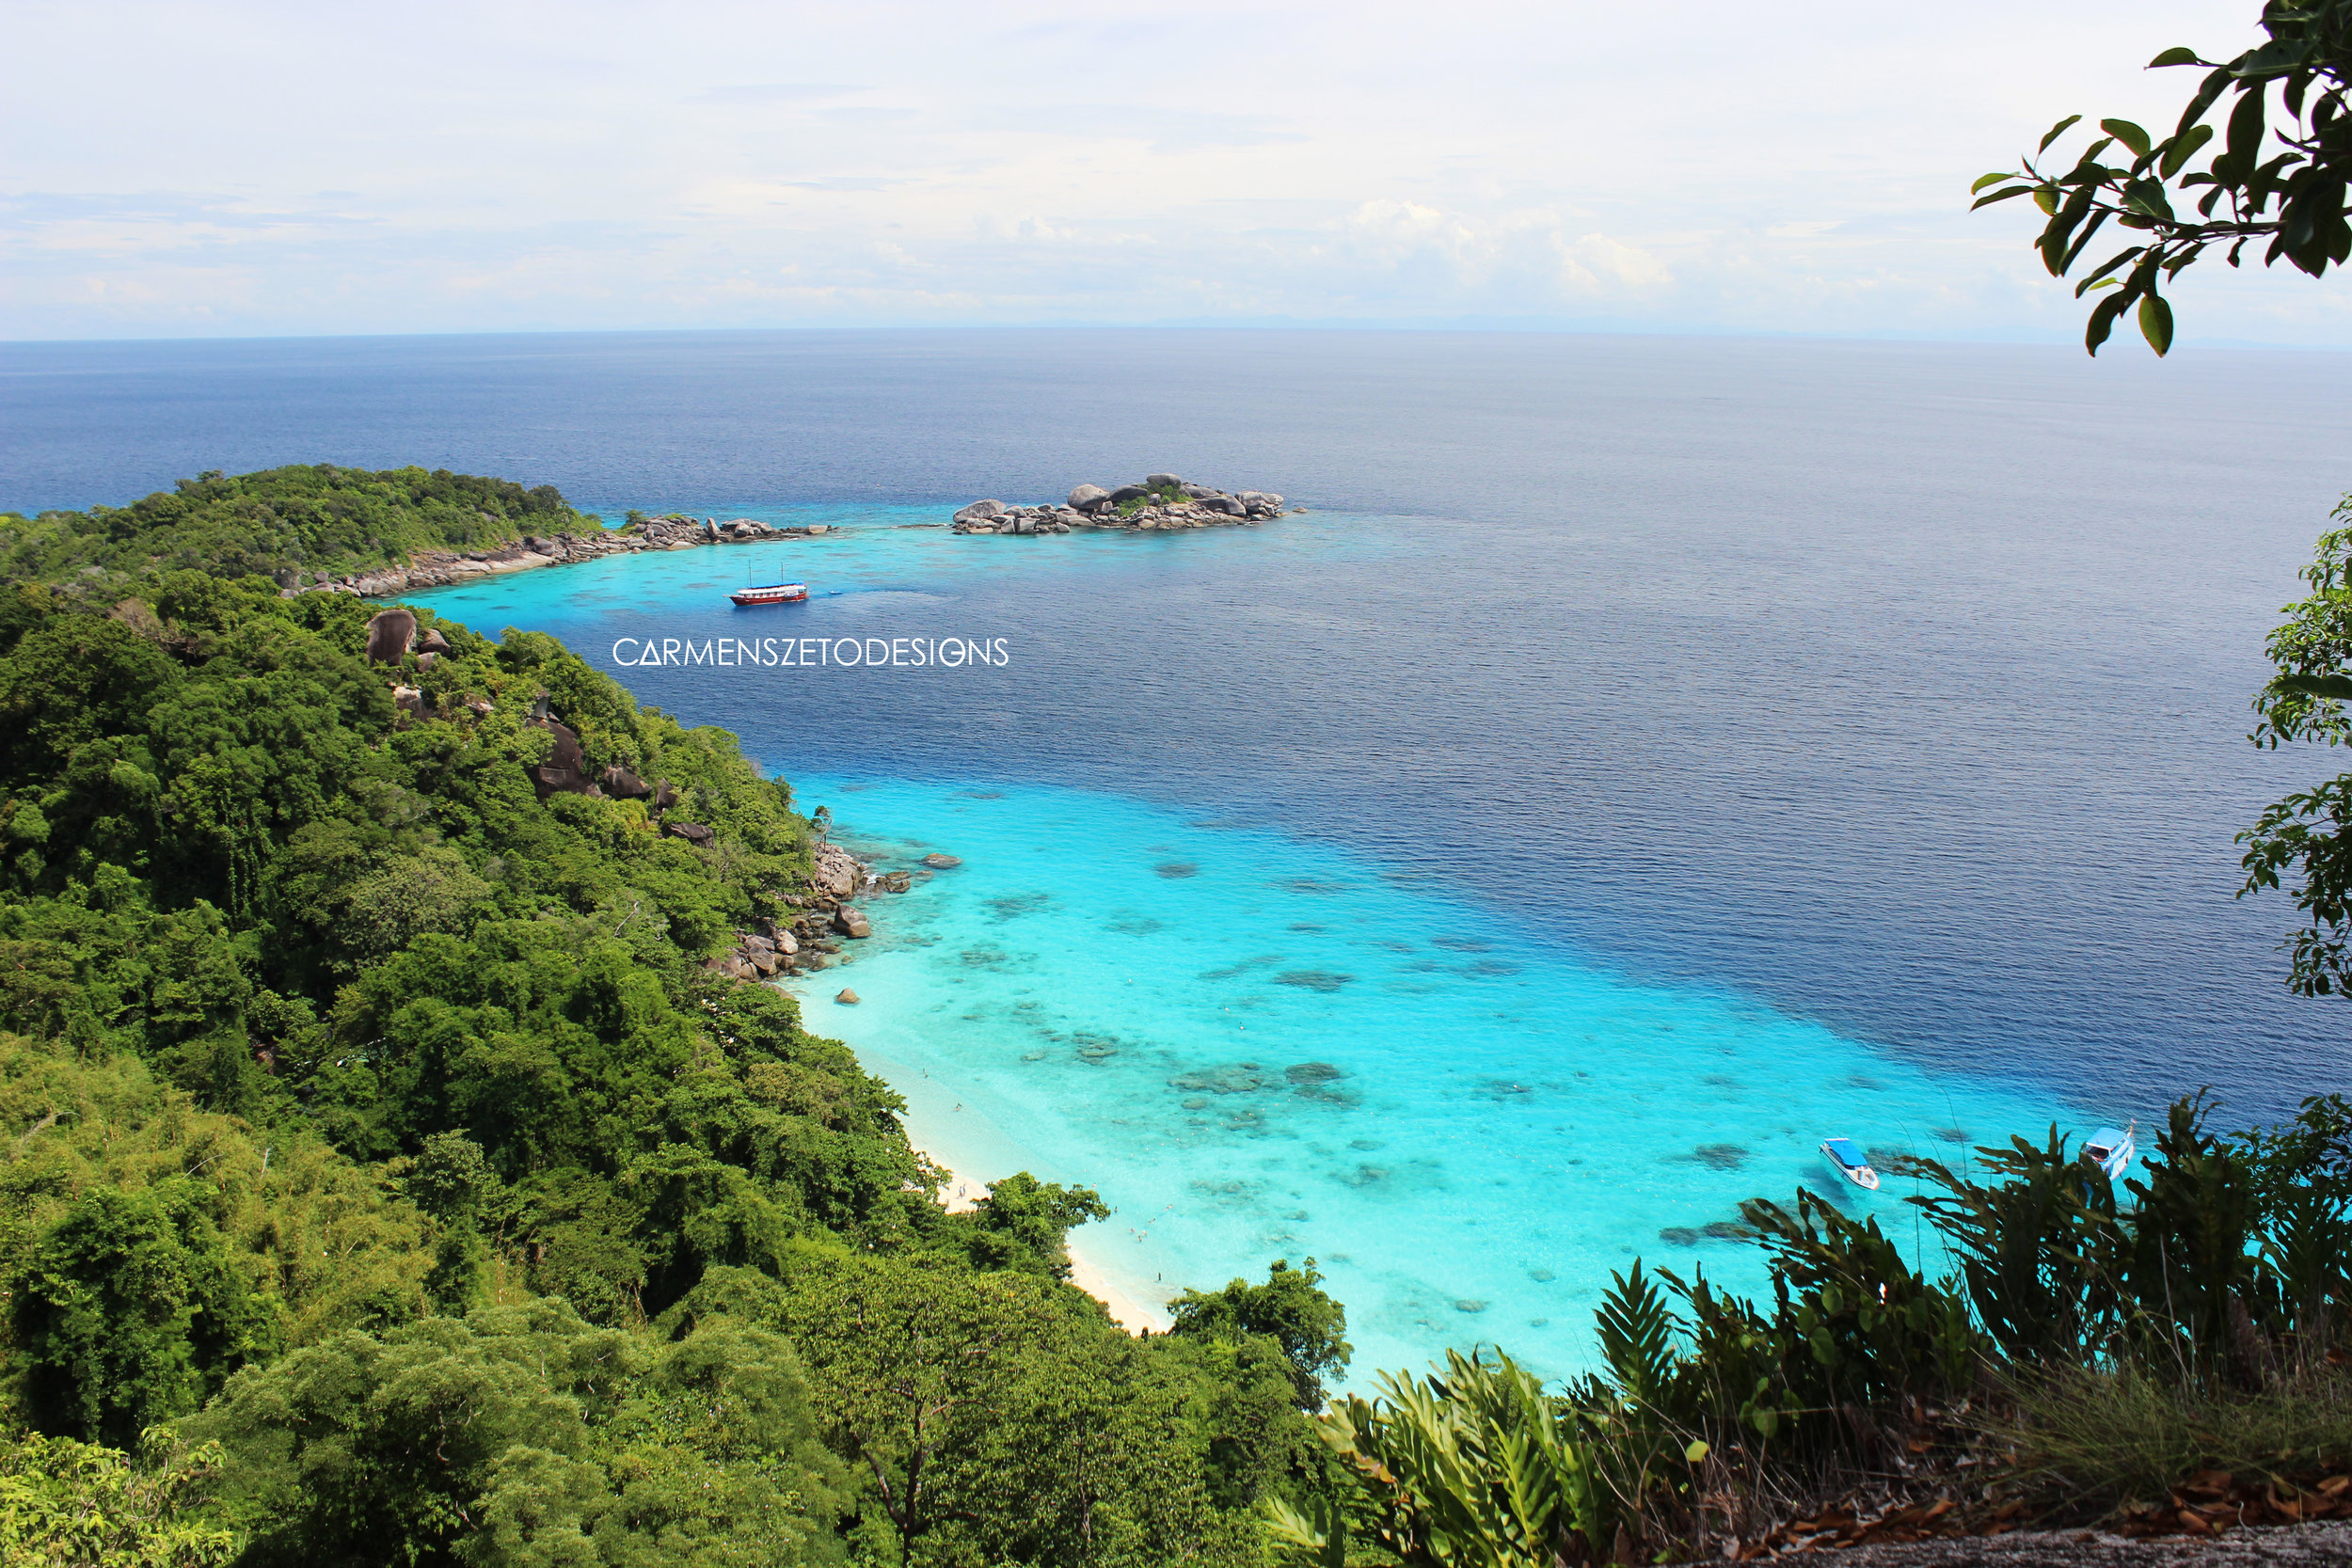 Pristene waters of the Similan Islands